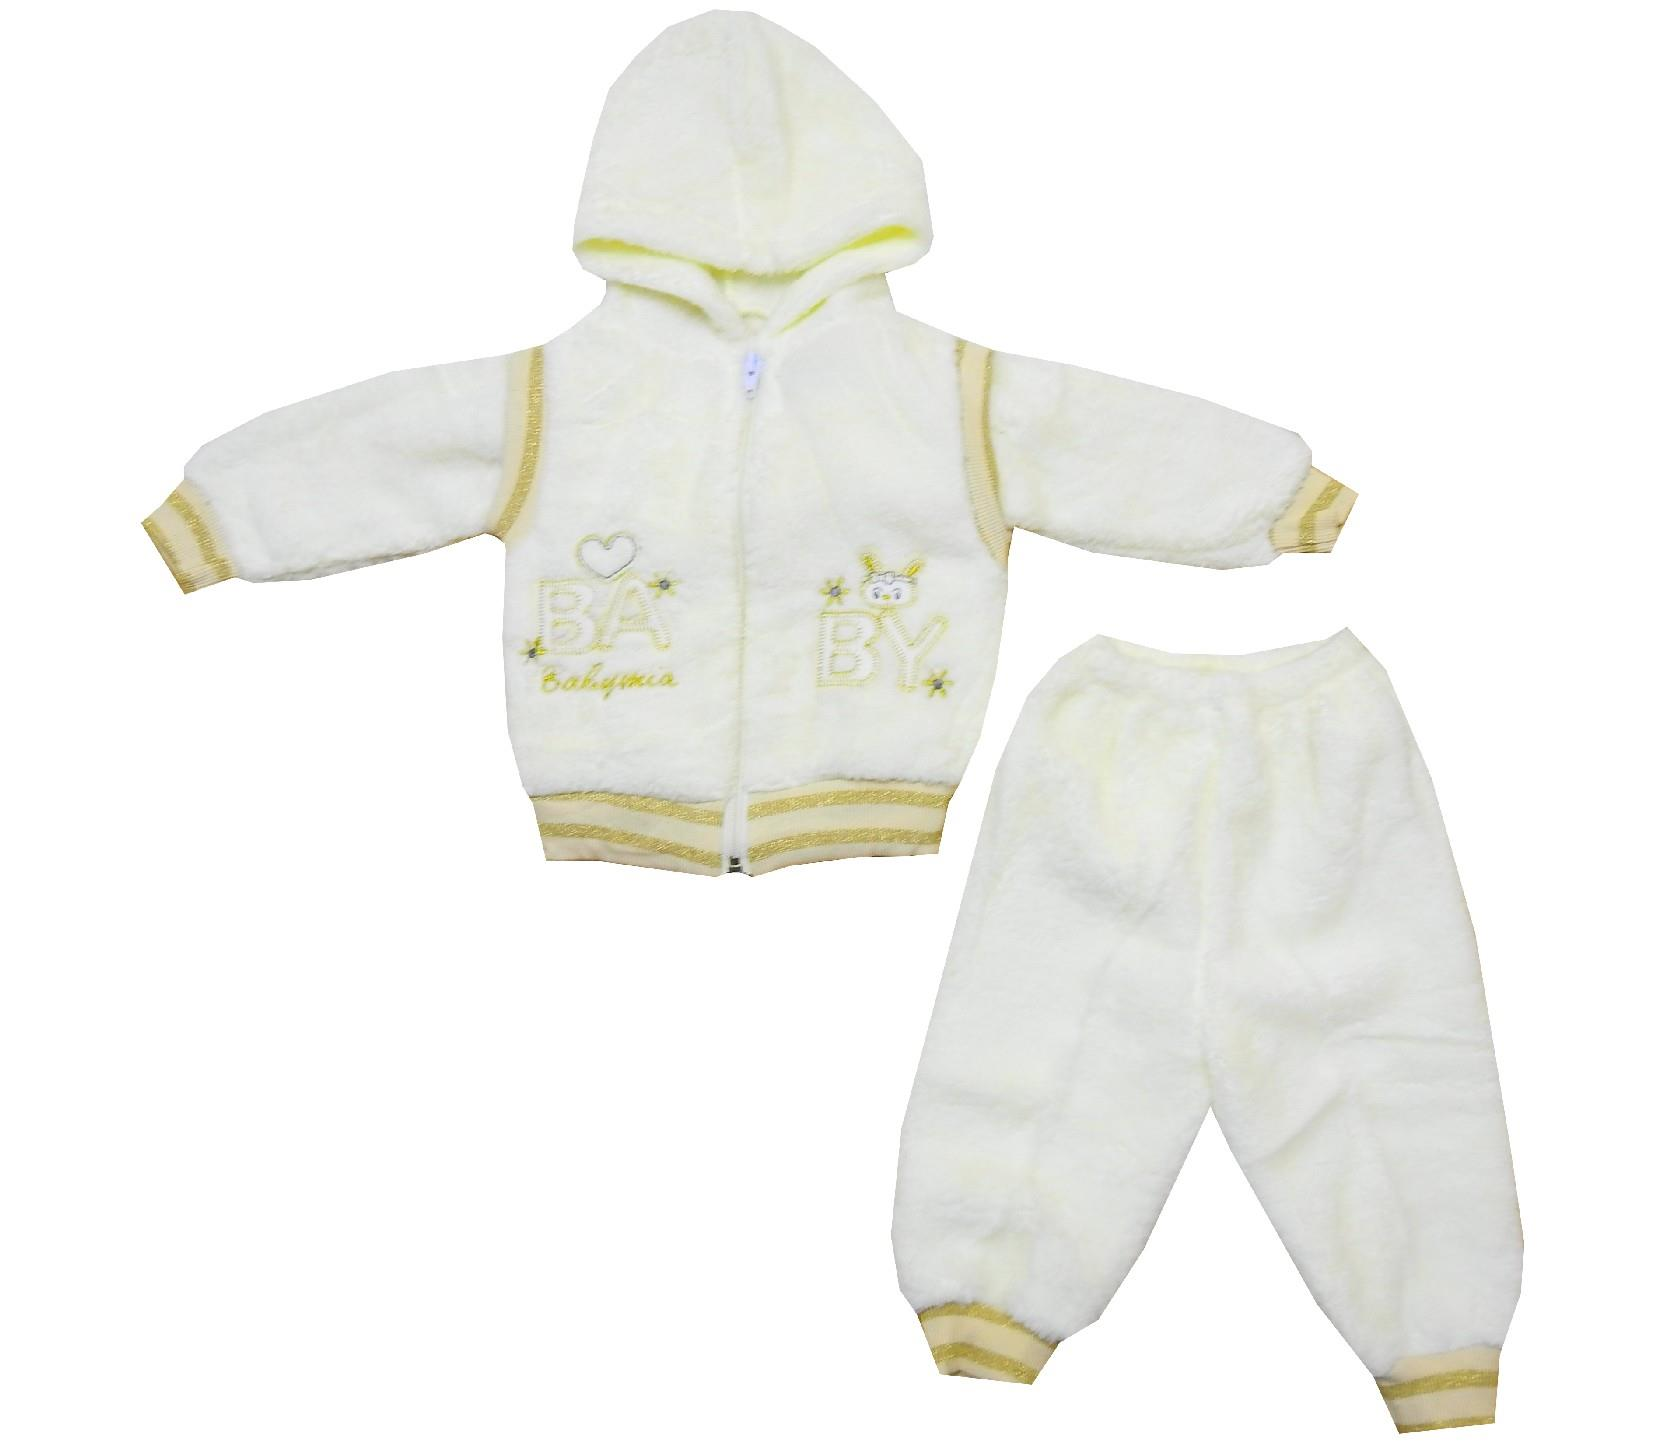 Wholesale baby print jacket and trouser double set for baby (6-9 month)